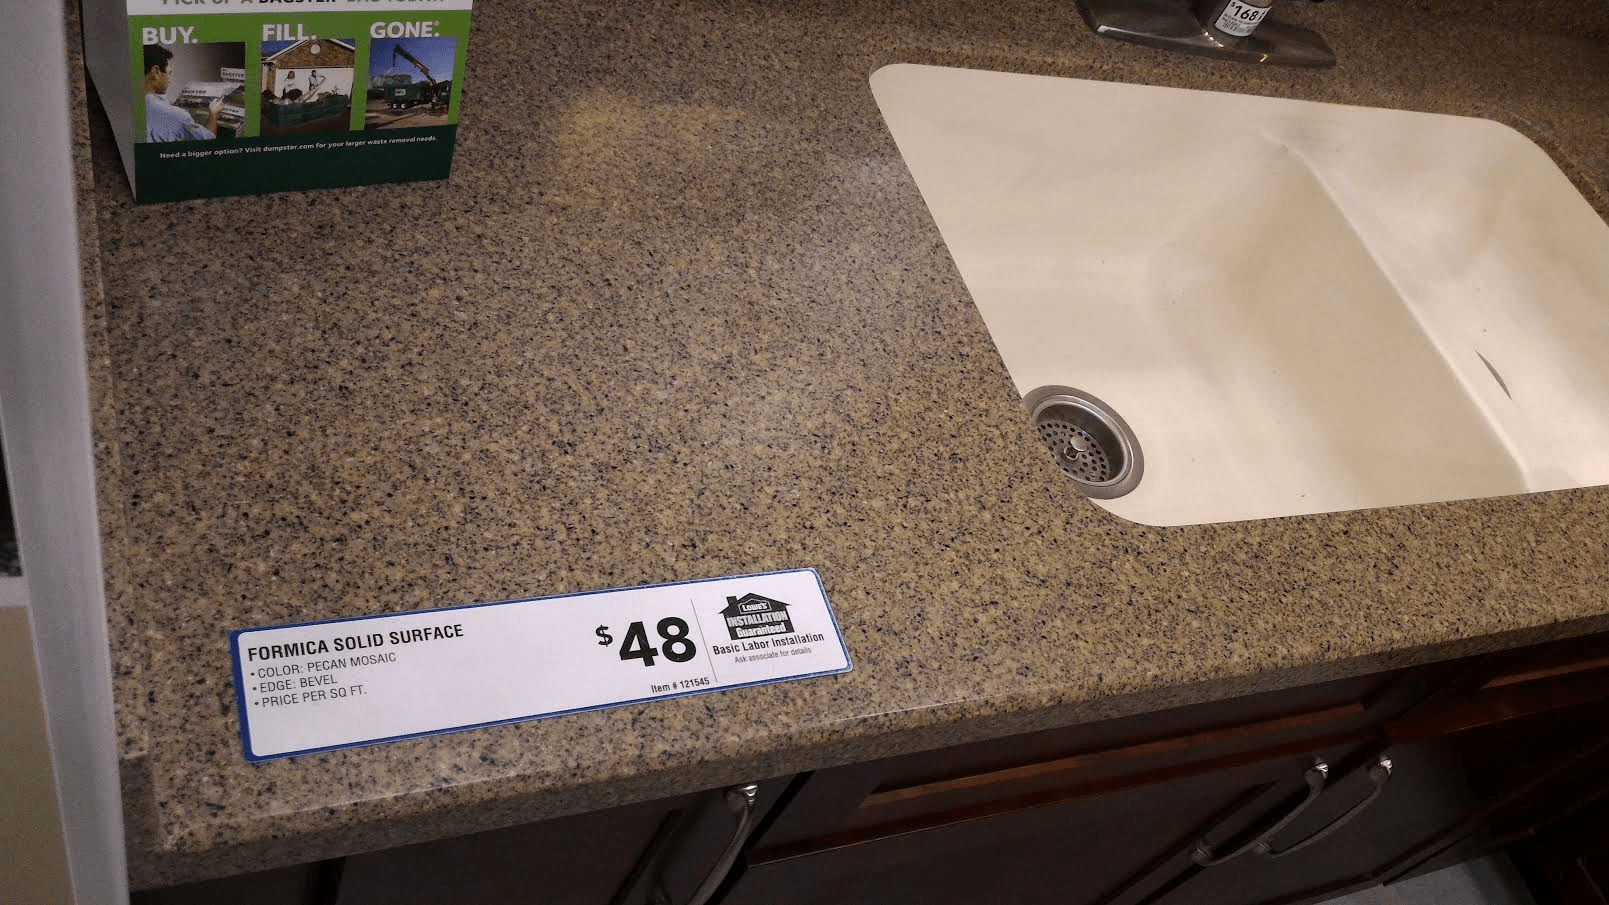 Top 15 countertop costs plus pros cons 2017 2018 home for Corian cost per square foot